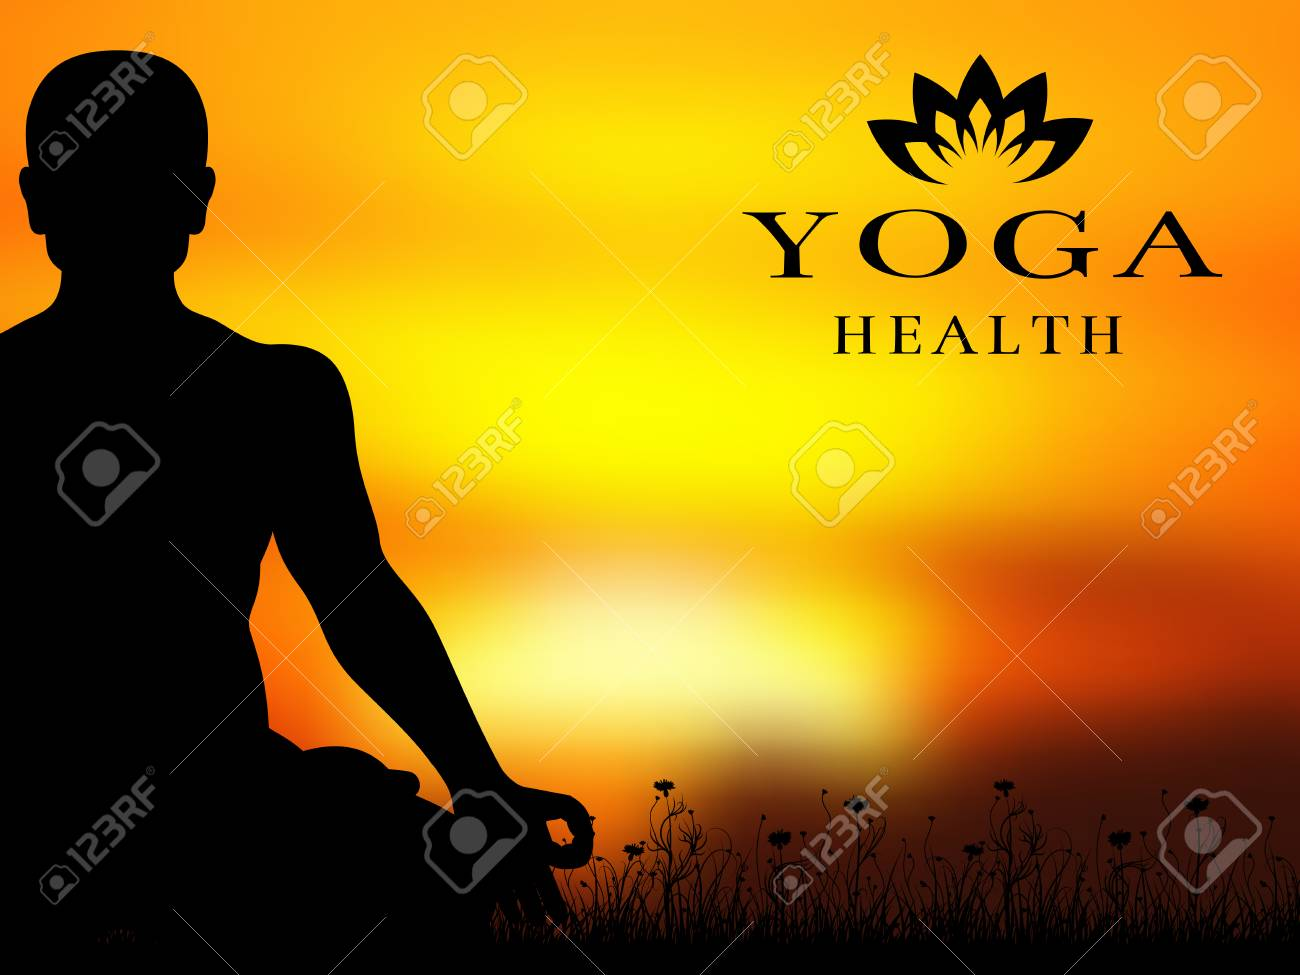 Yoga Meditation Silhouette Vector Background Banner And Poster